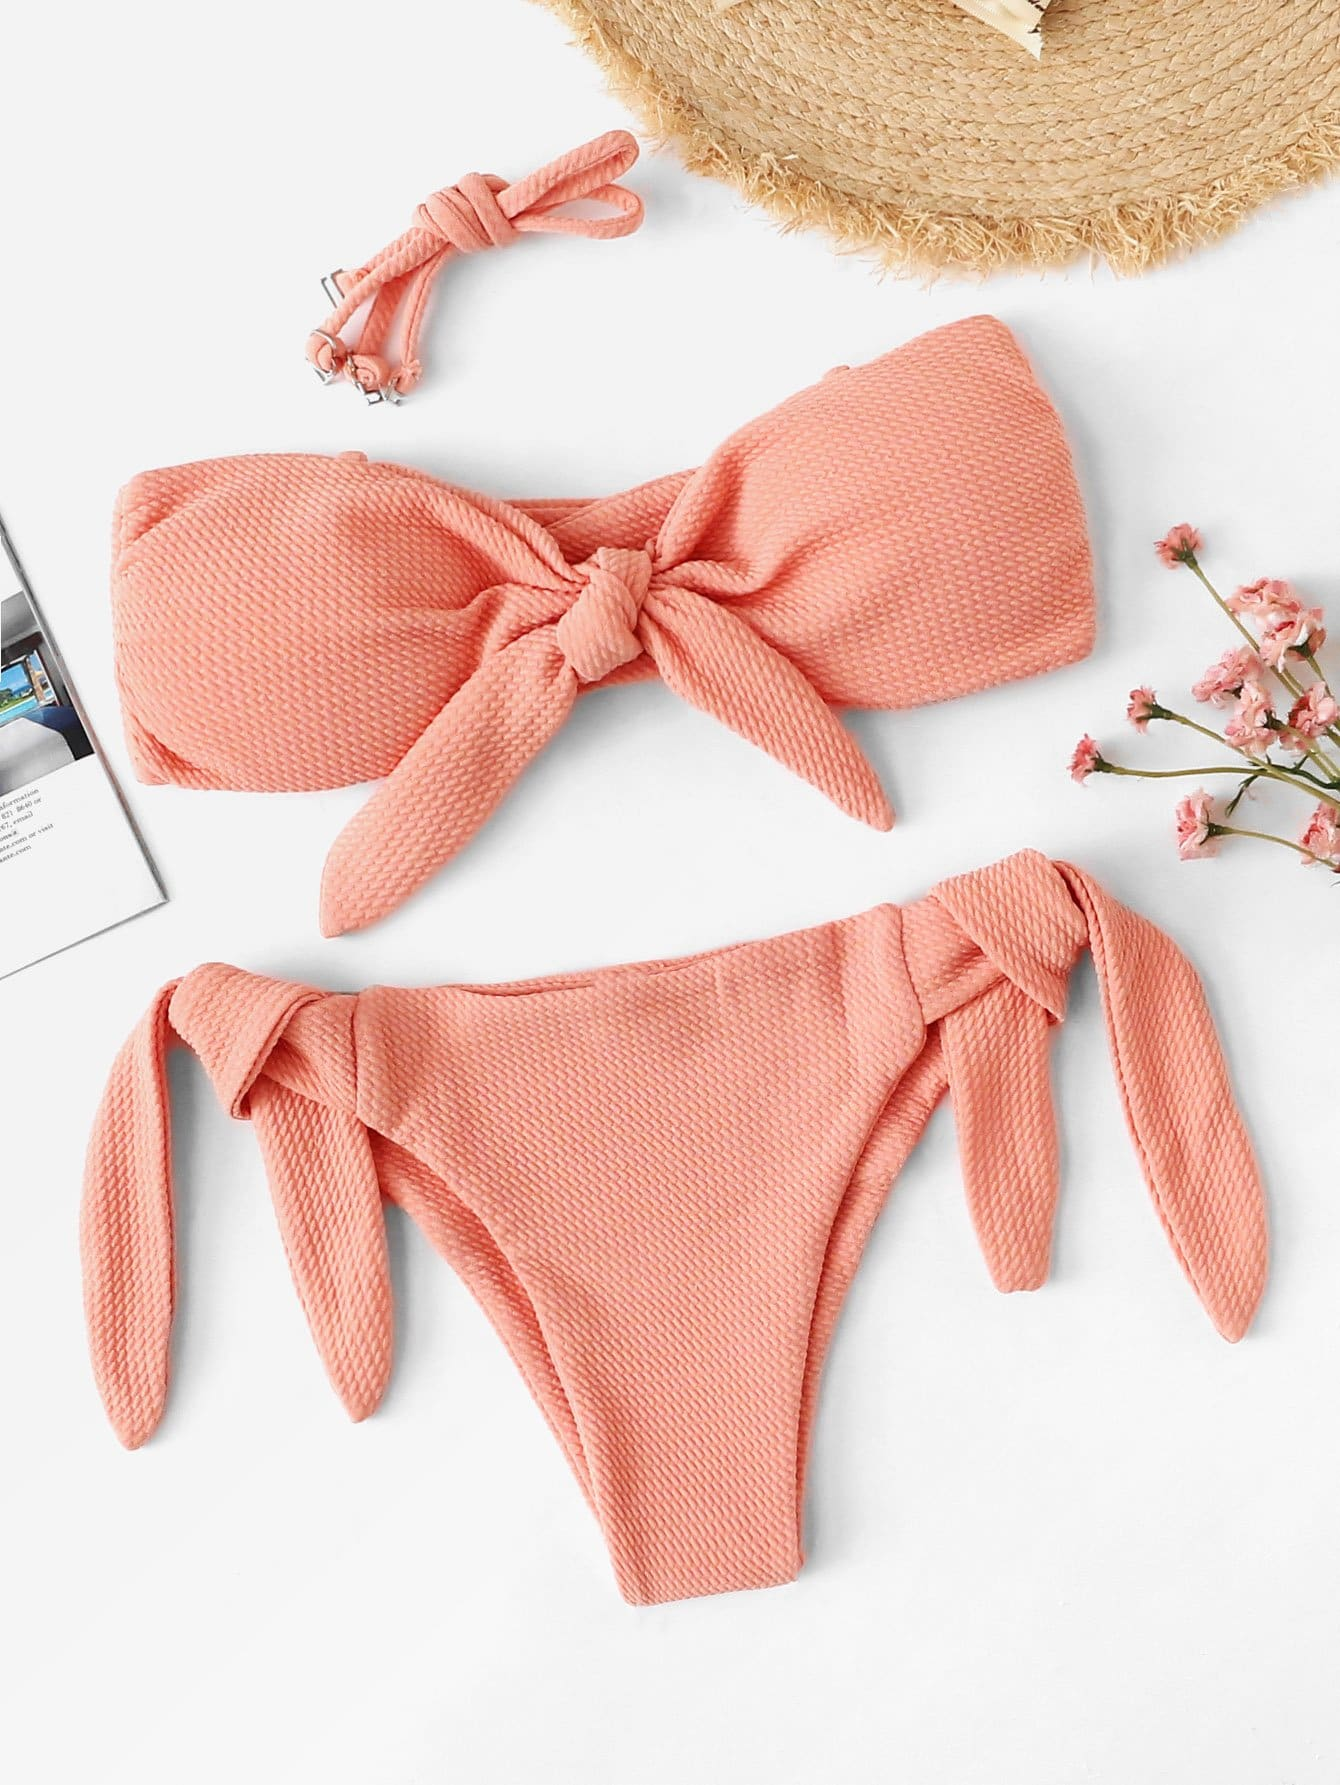 Knot Front Bandeau Top With Tie Side Bikini Set null